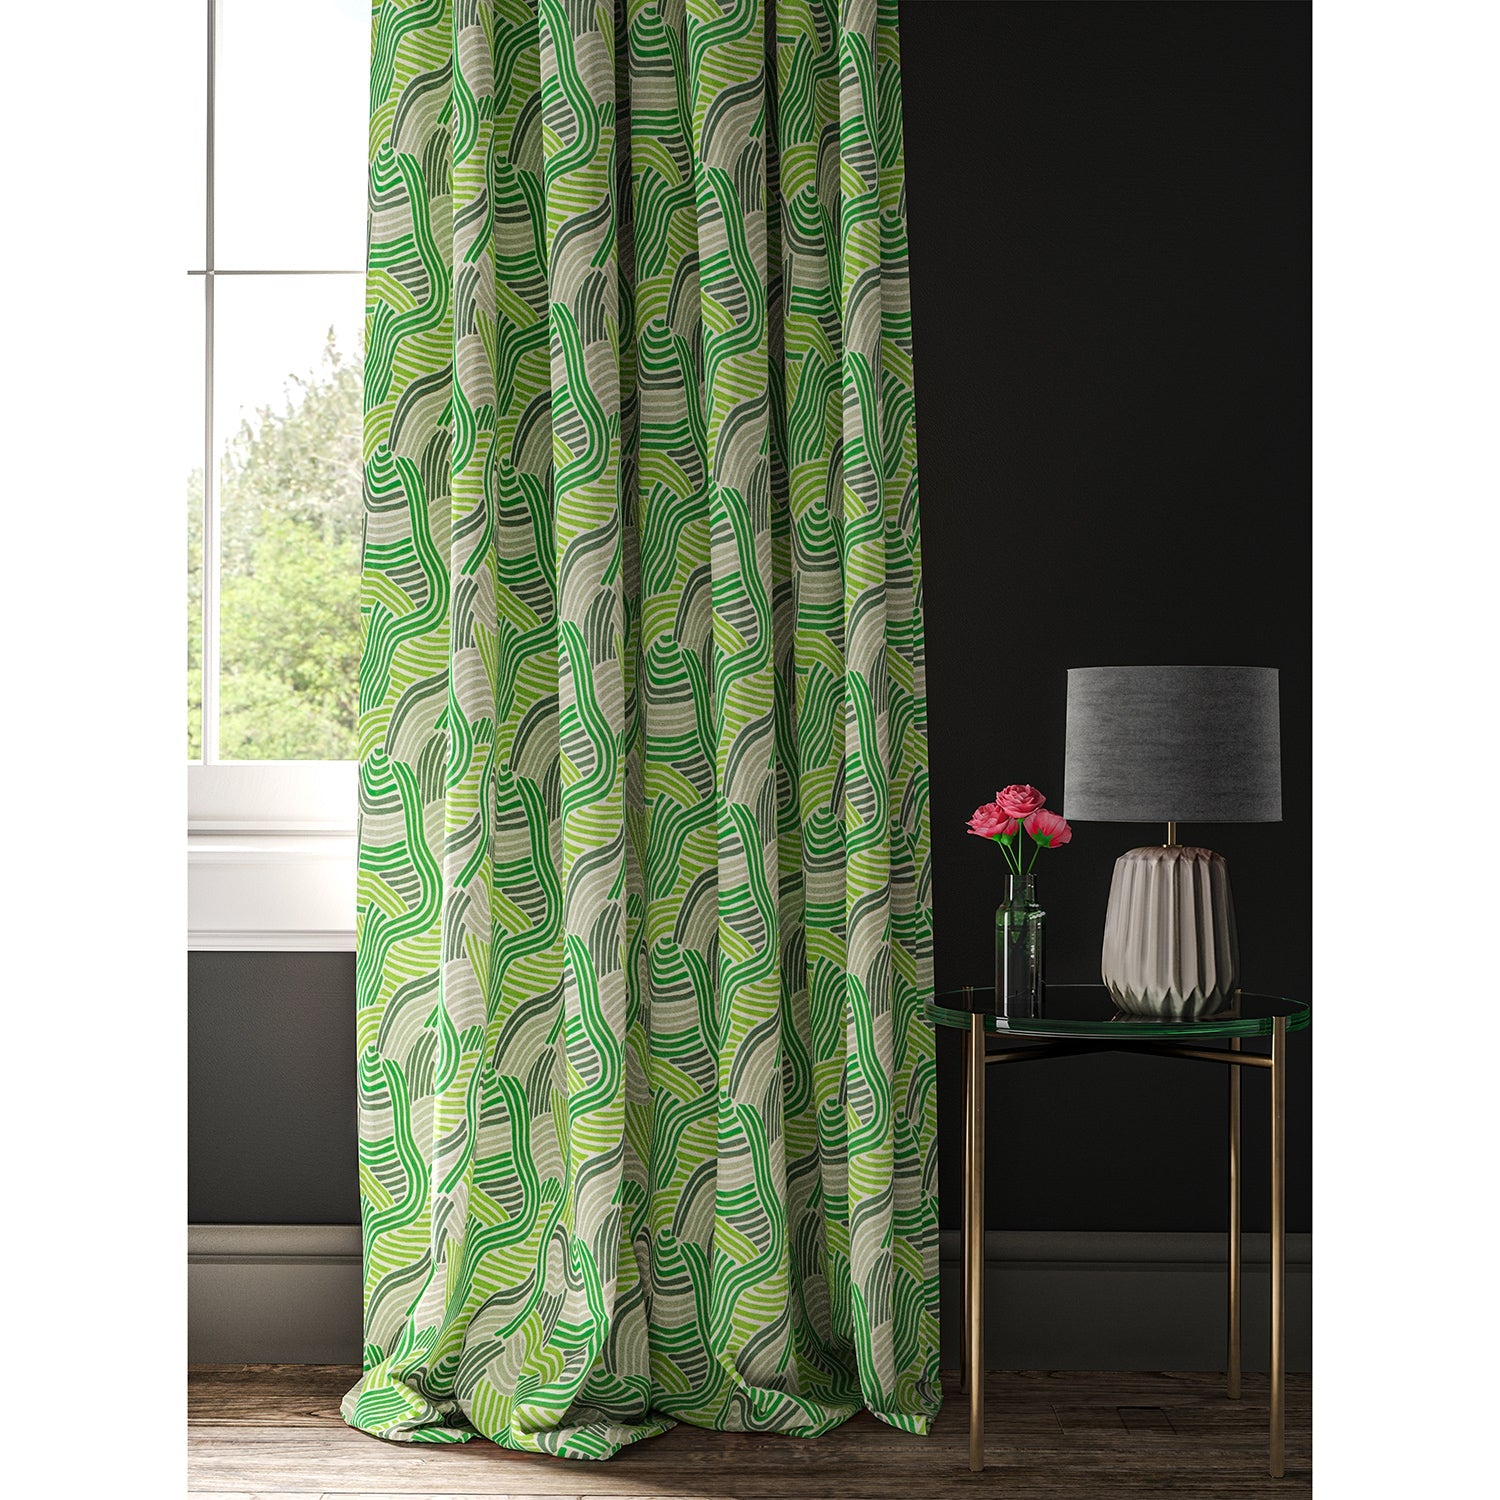 Green curtain with a modern wavy print